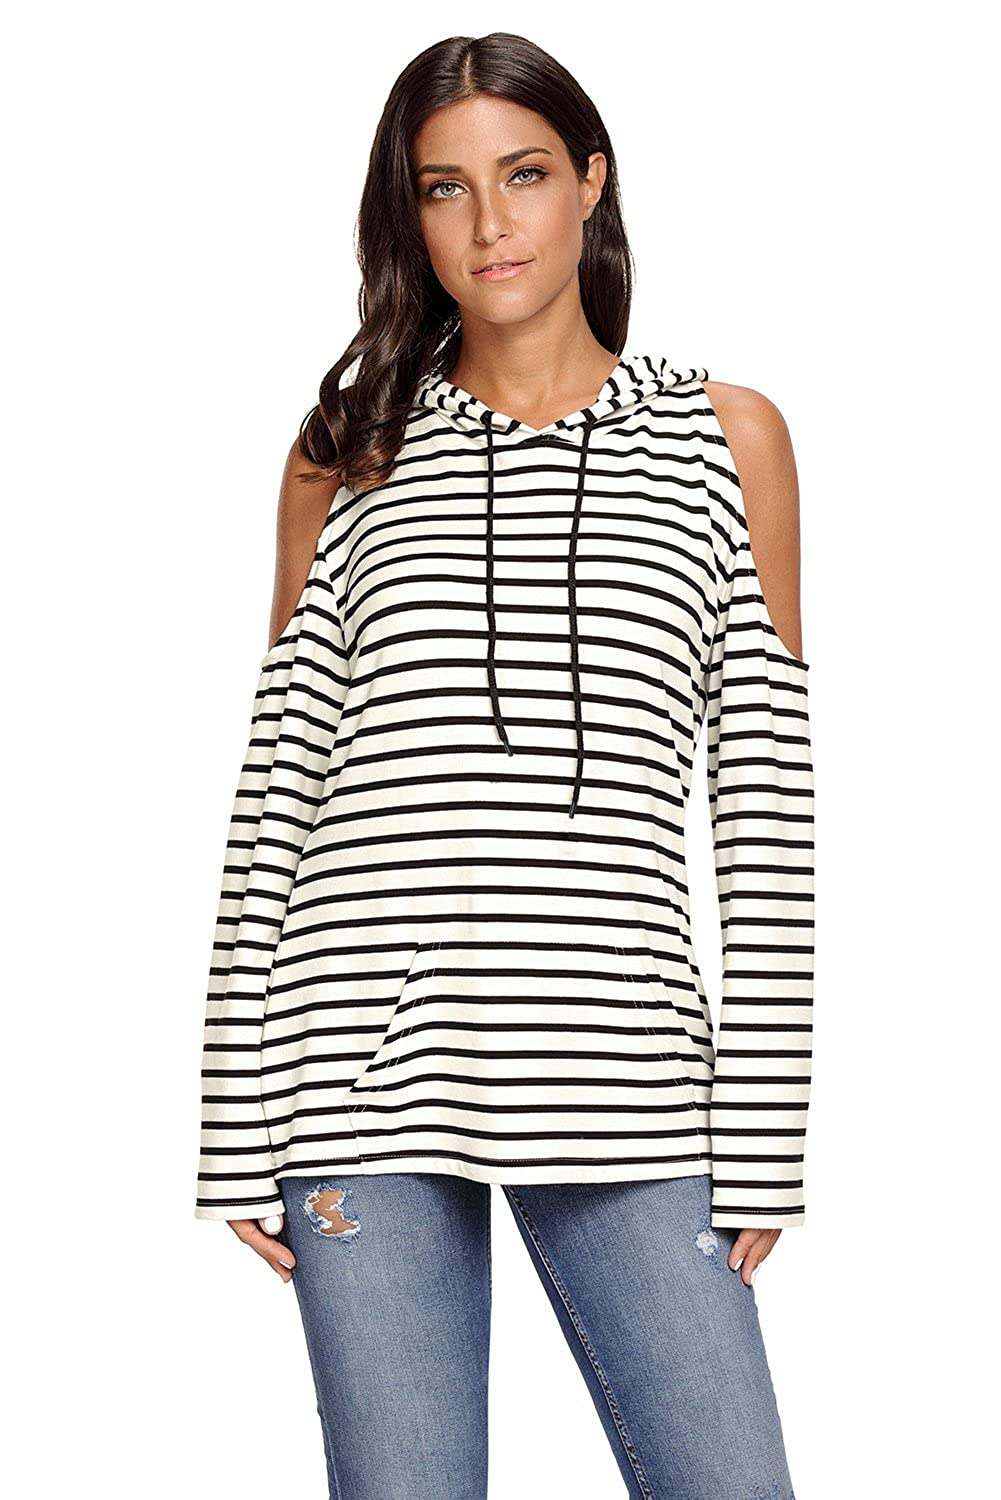 86dbd72d28c1a4 Fantasy Star Women Fashion Navy White Striped Cold Shoulder Long Sleeve Top  at Amazon Women's Clothing store: